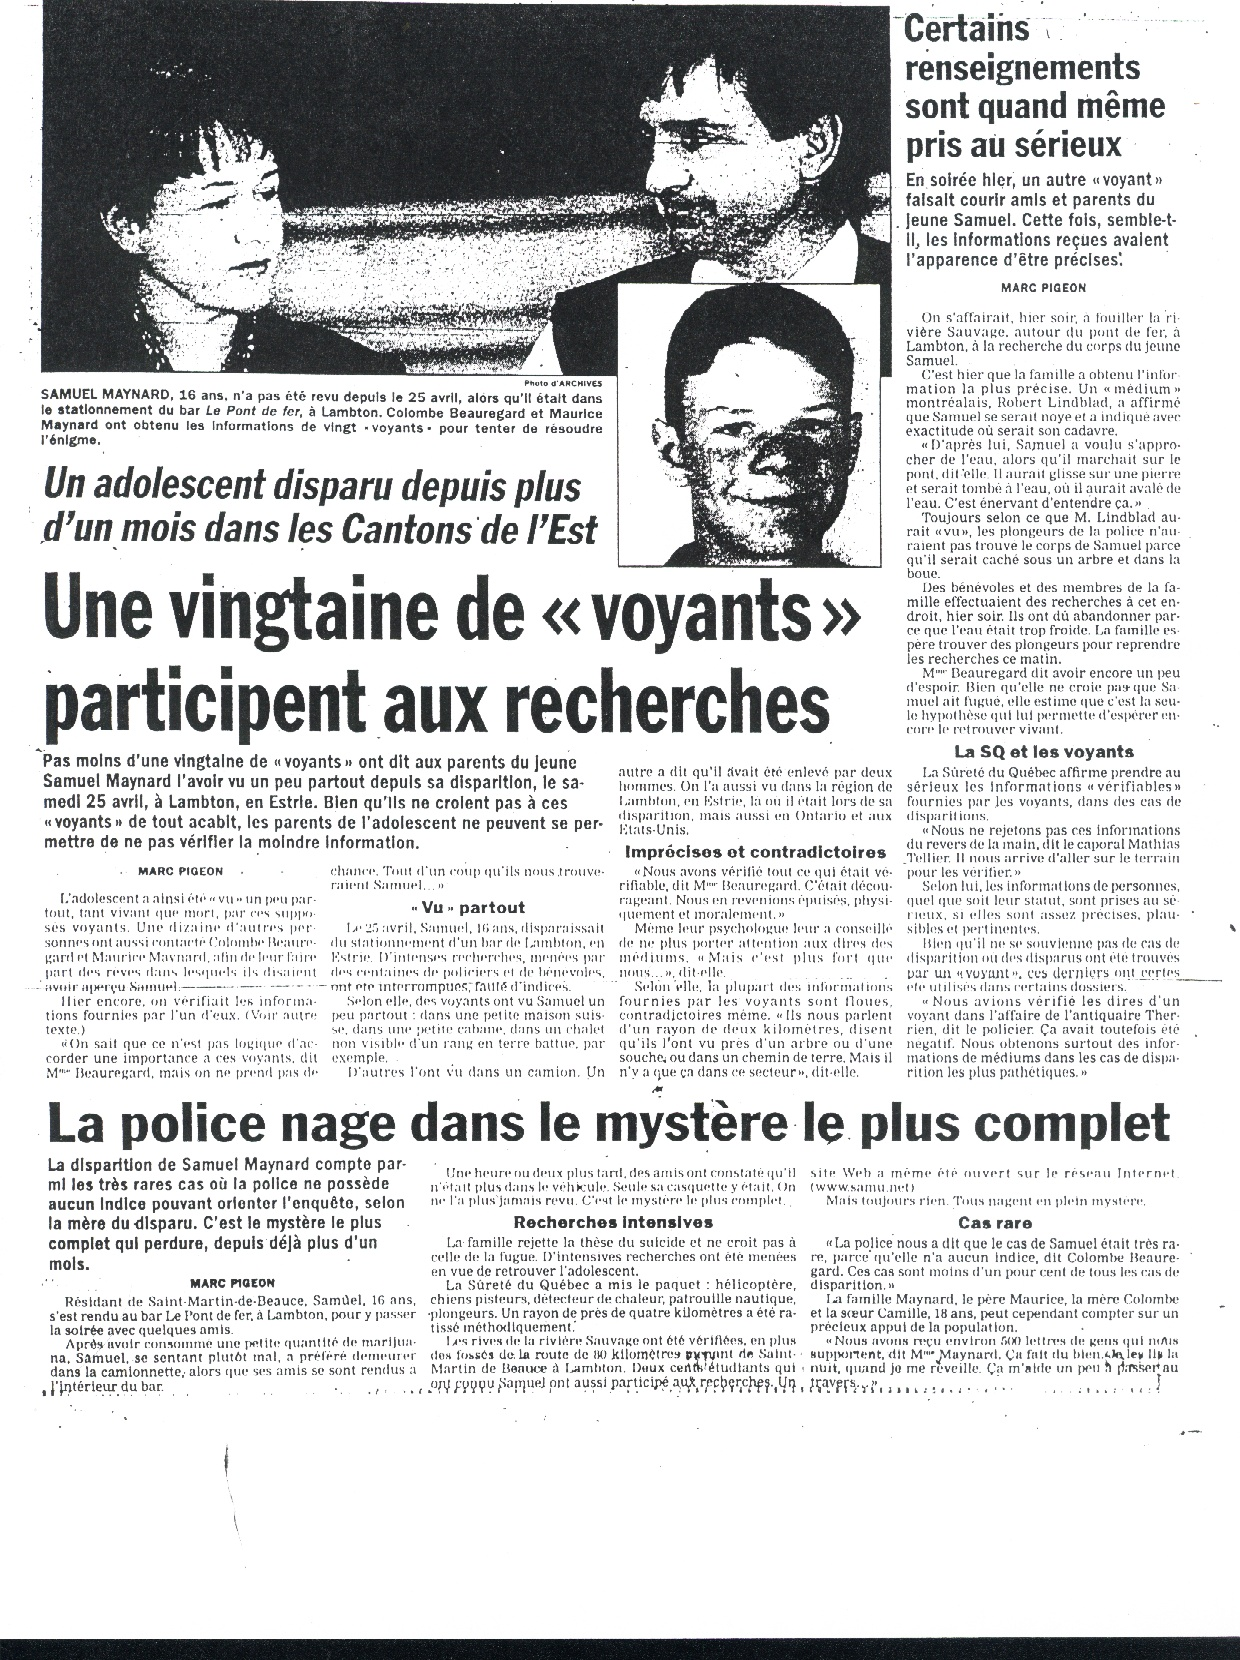 Journal de Montreal 31 - 5 - 98